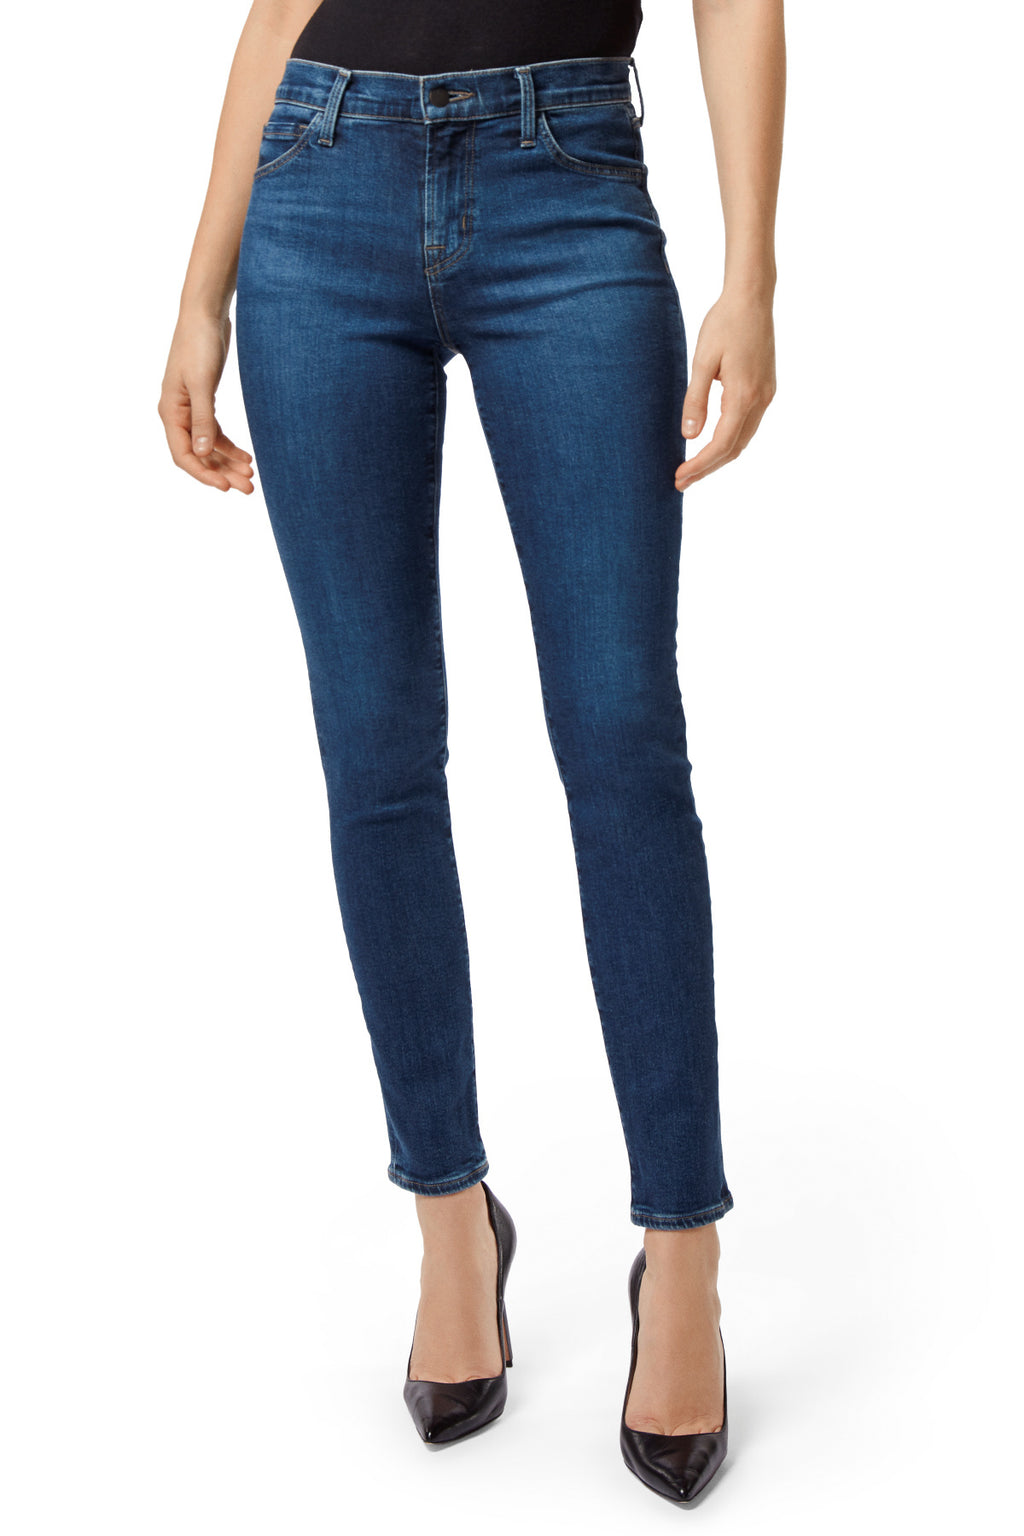 J BRAND - 811 Mid Rise Skinny Pants online at PAYA boutique